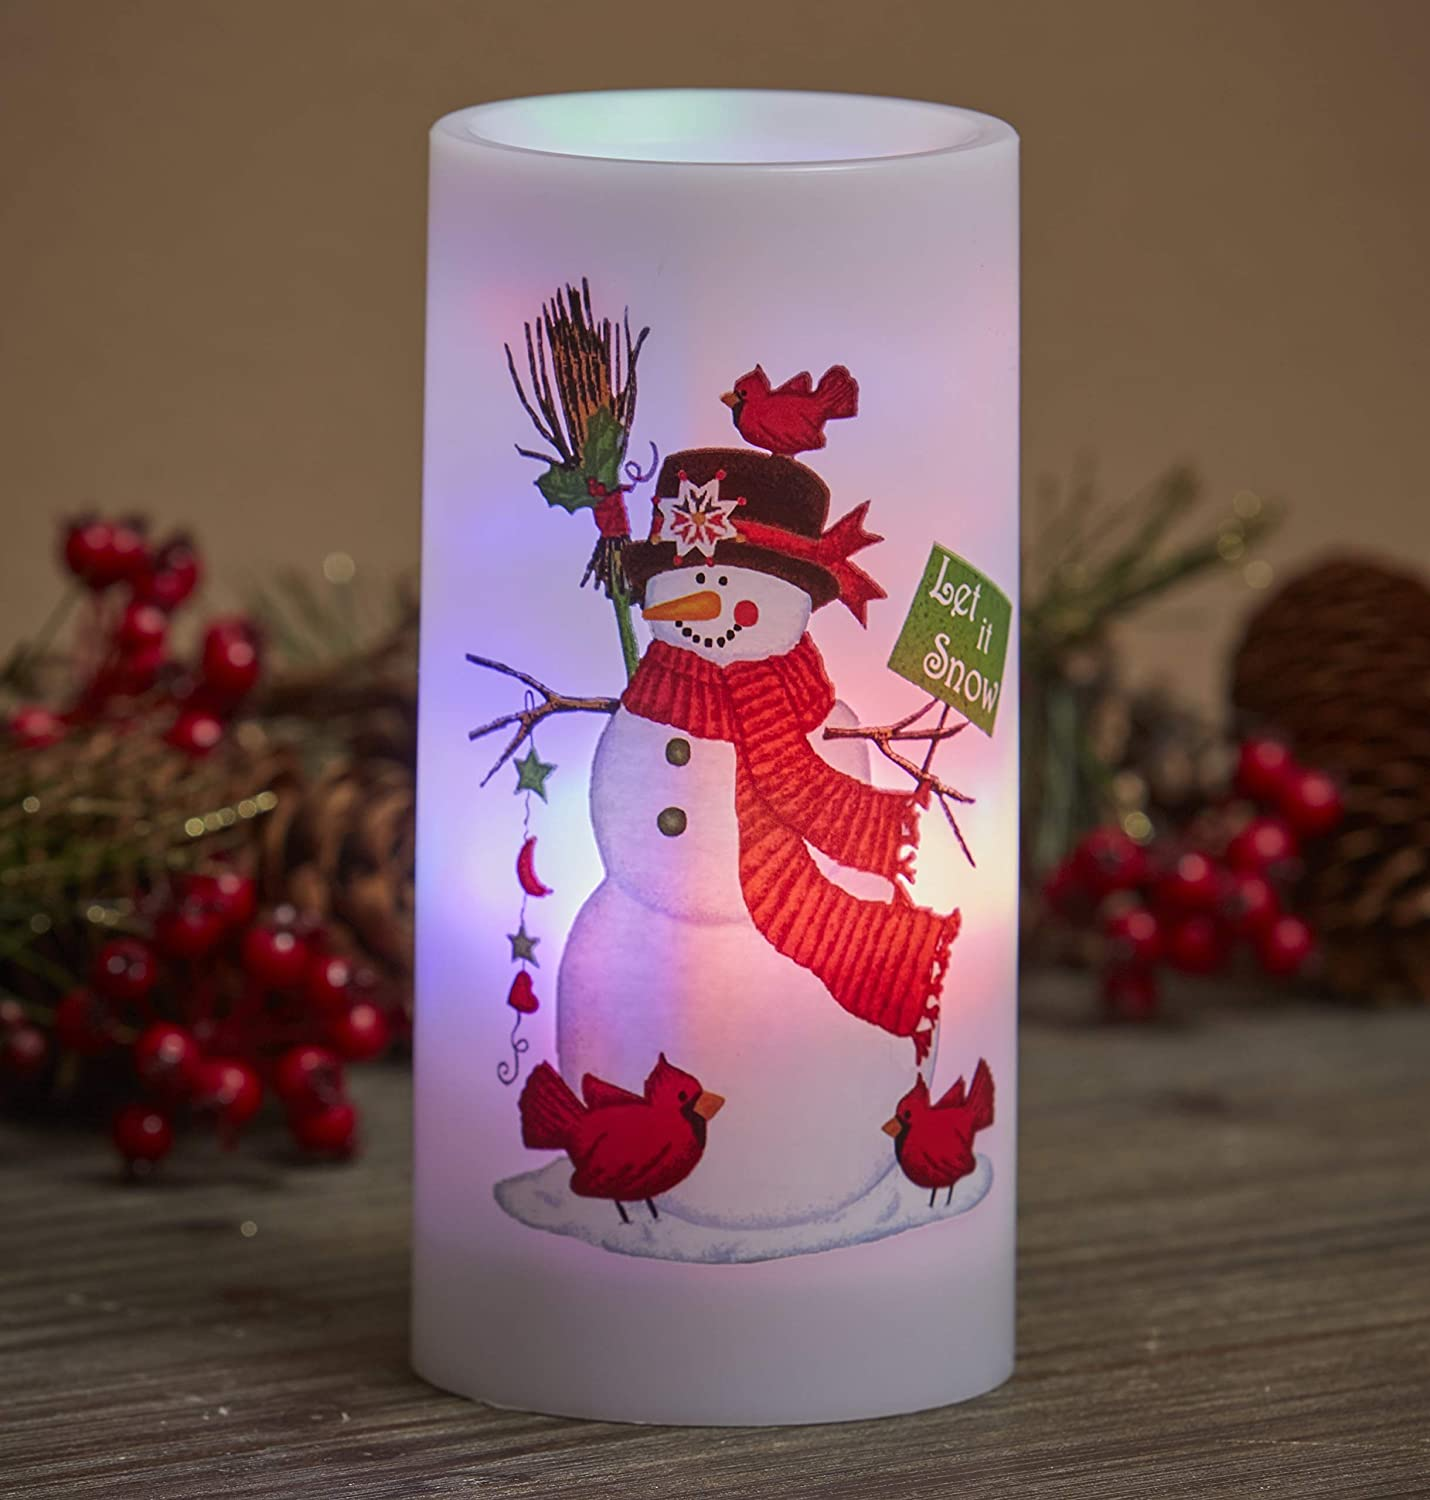 Christmas Flameless Projector Lamp Candle - Home Decor for The Holiday